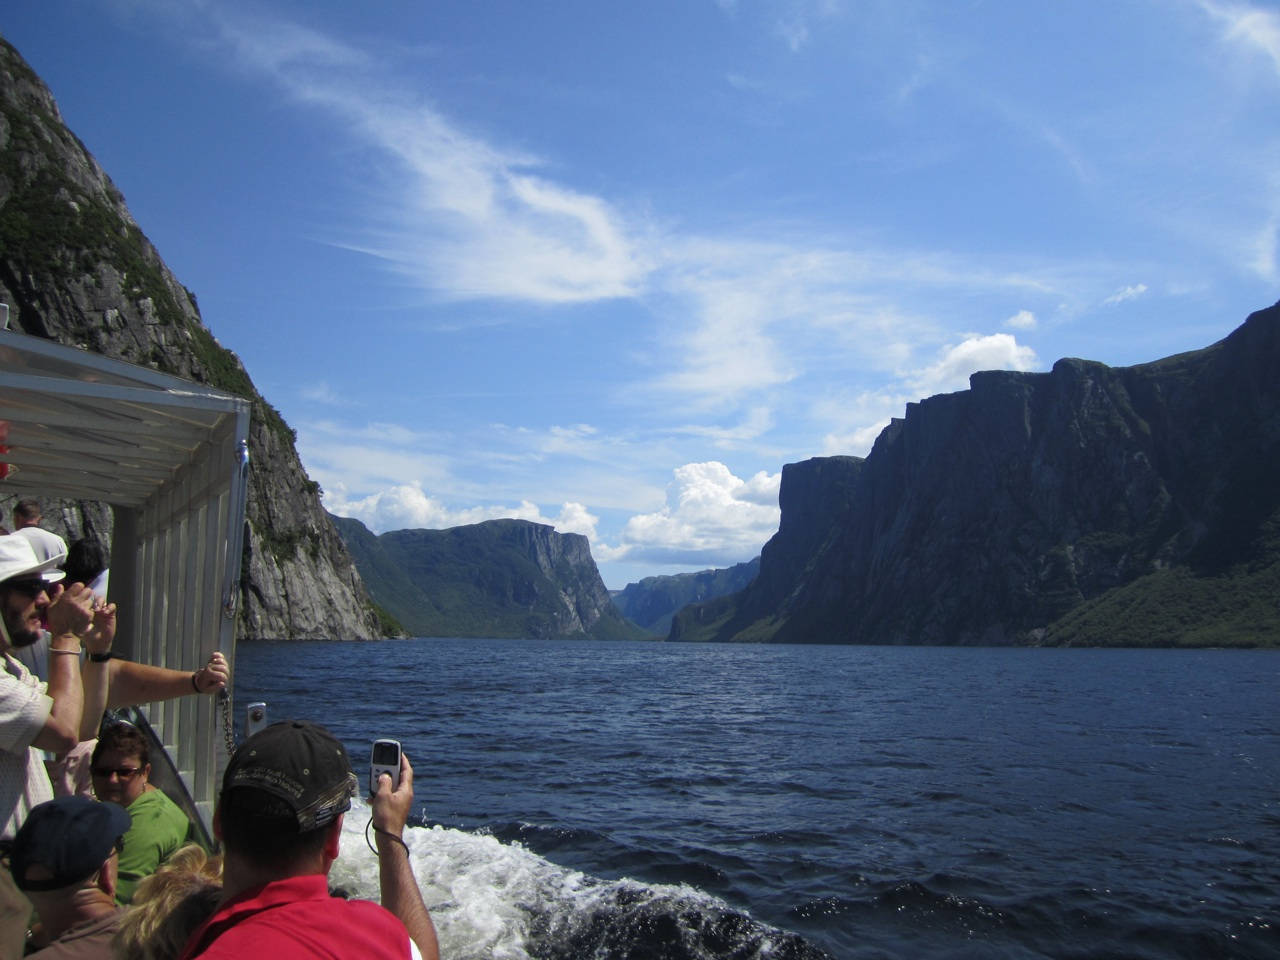 Leaving The Fjord